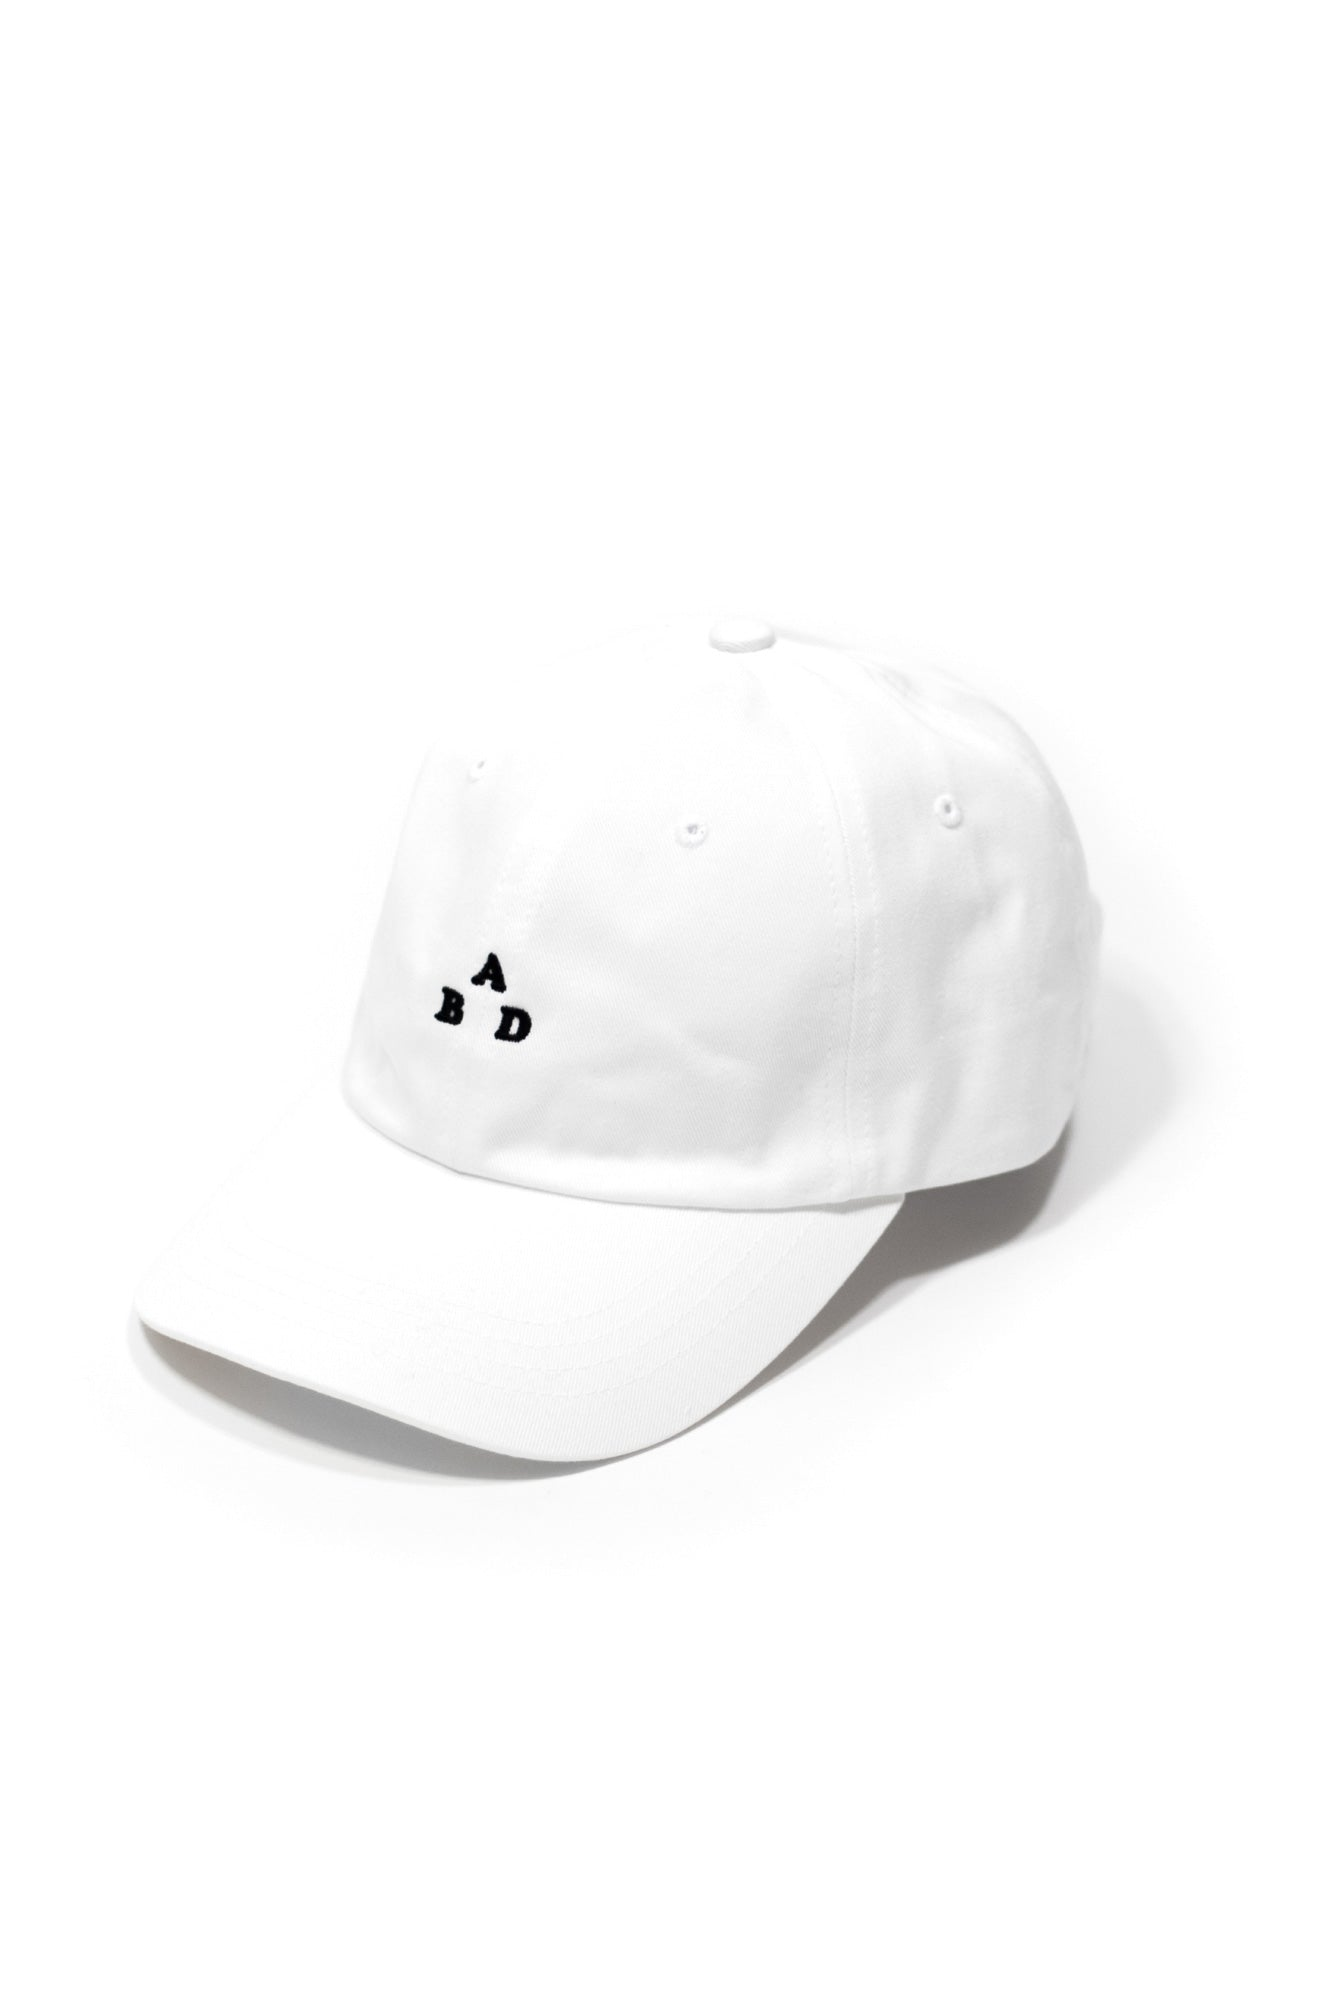 ILLUMINATI BAD HAT (WHITE)